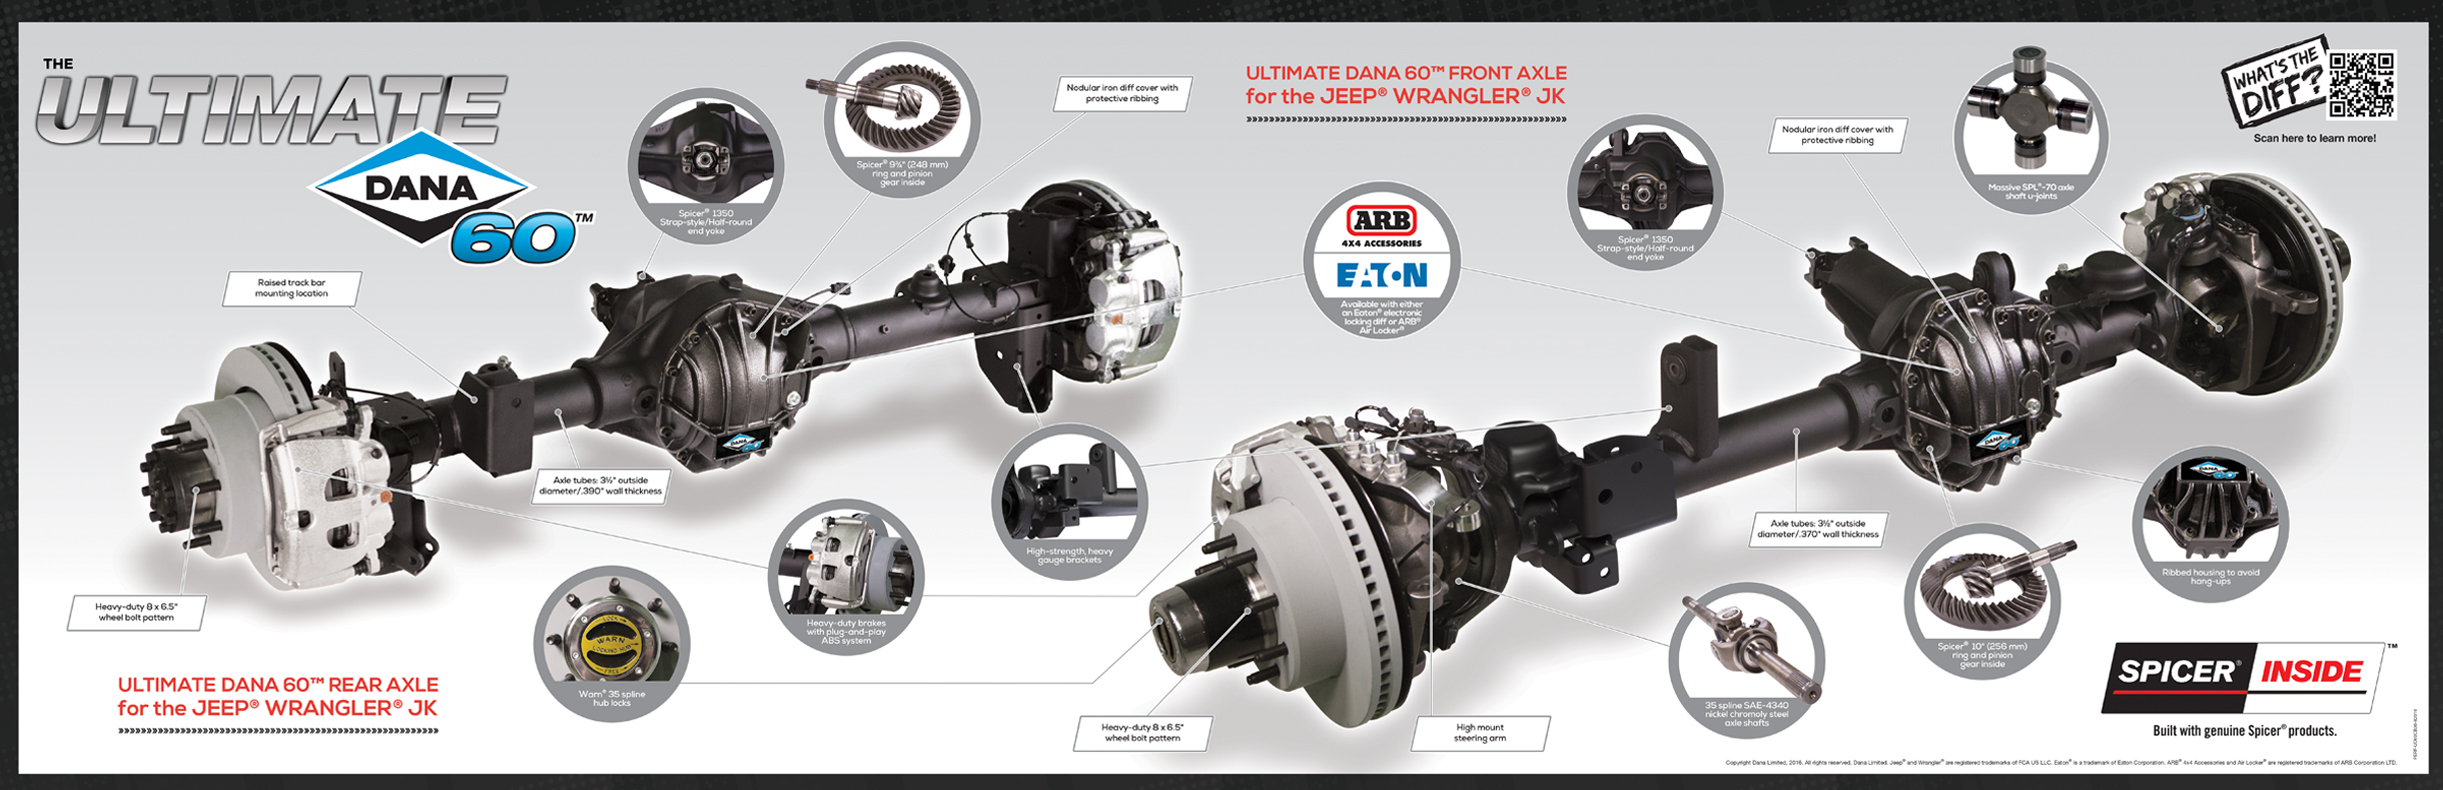 Ultimate Dana 60™ Front Axle - Axle | Spicer Parts